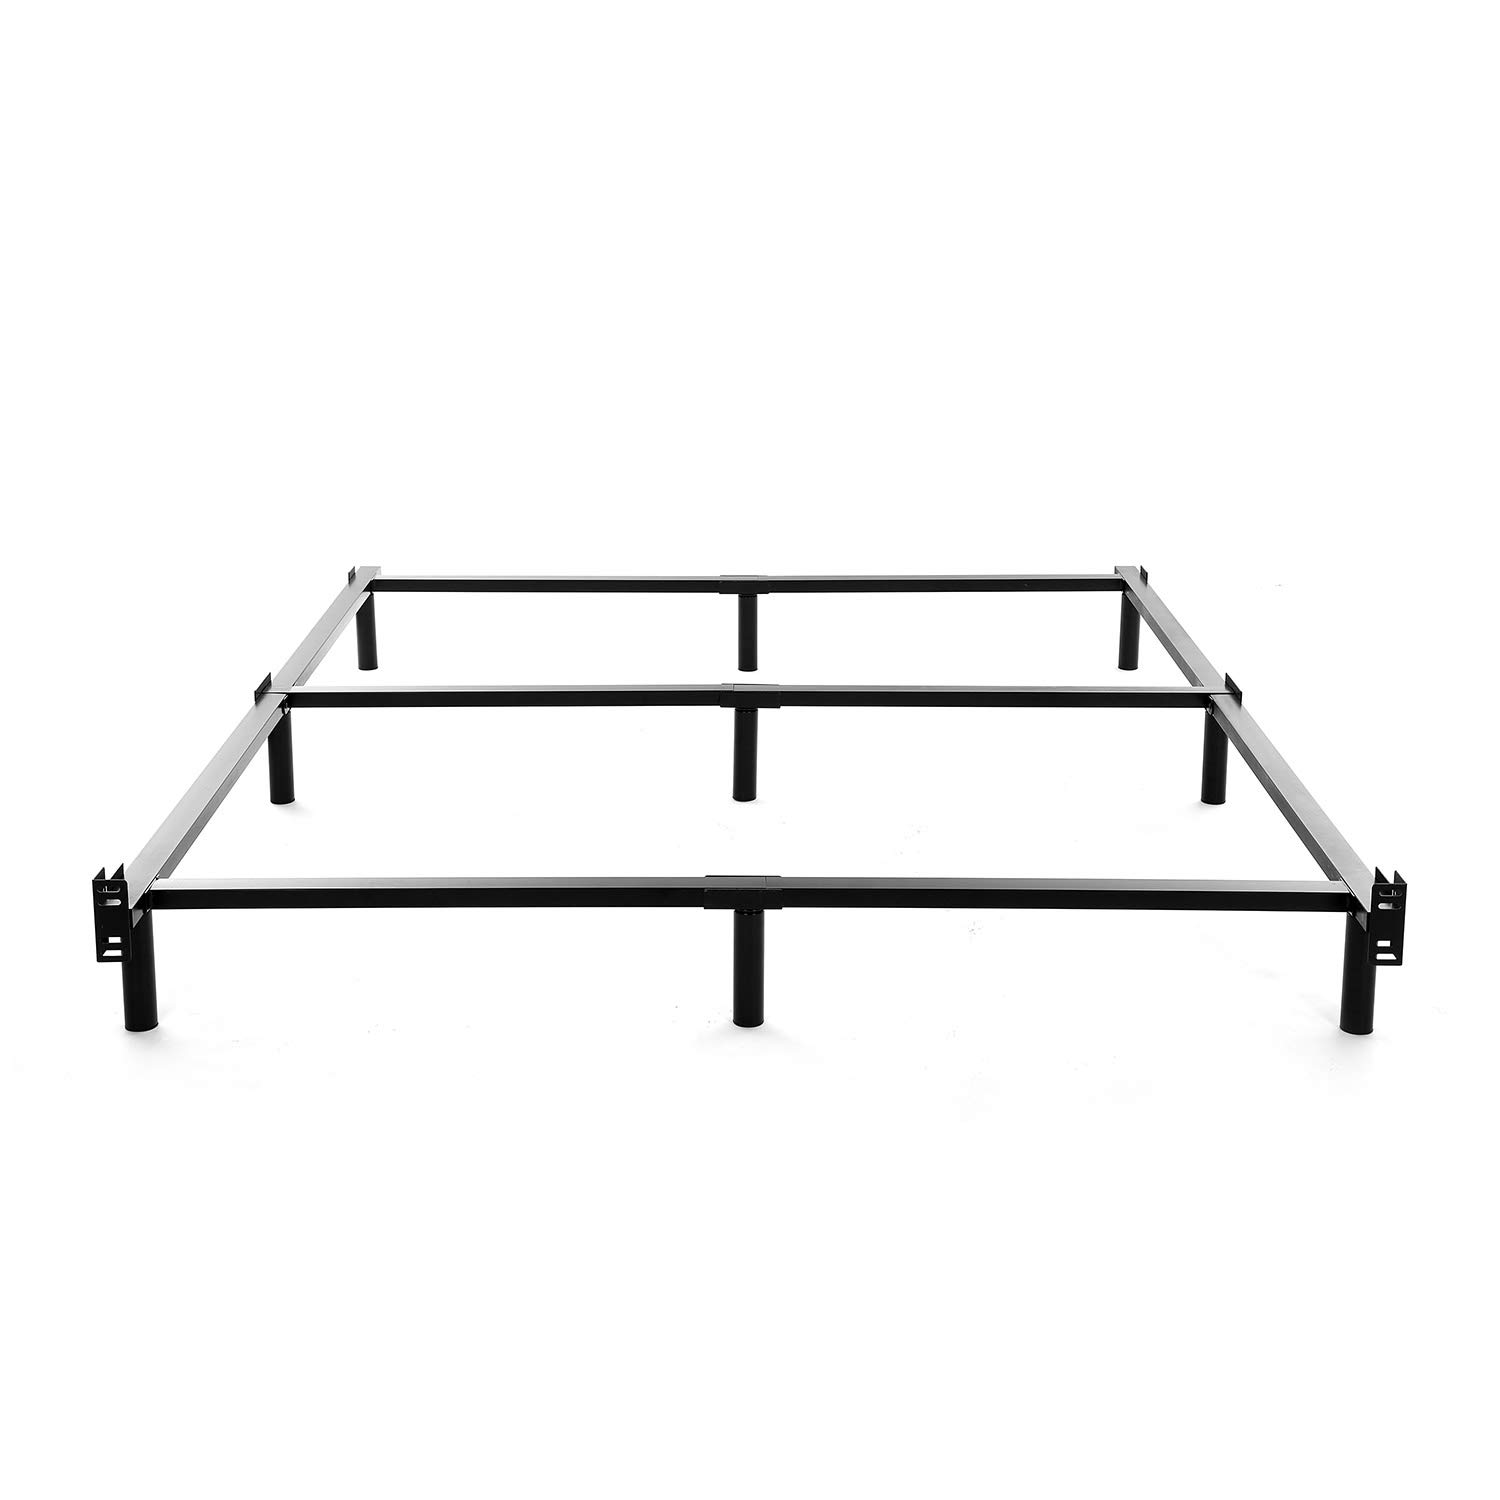 best service 4f31b c3a80 NOAH MEGATRON King Size Metal Bed Frame-7 Inch Heavy Duty Bedframe, 9-Leg  Support for Box Spring & Mattress Foundation, 3000LBS, Black